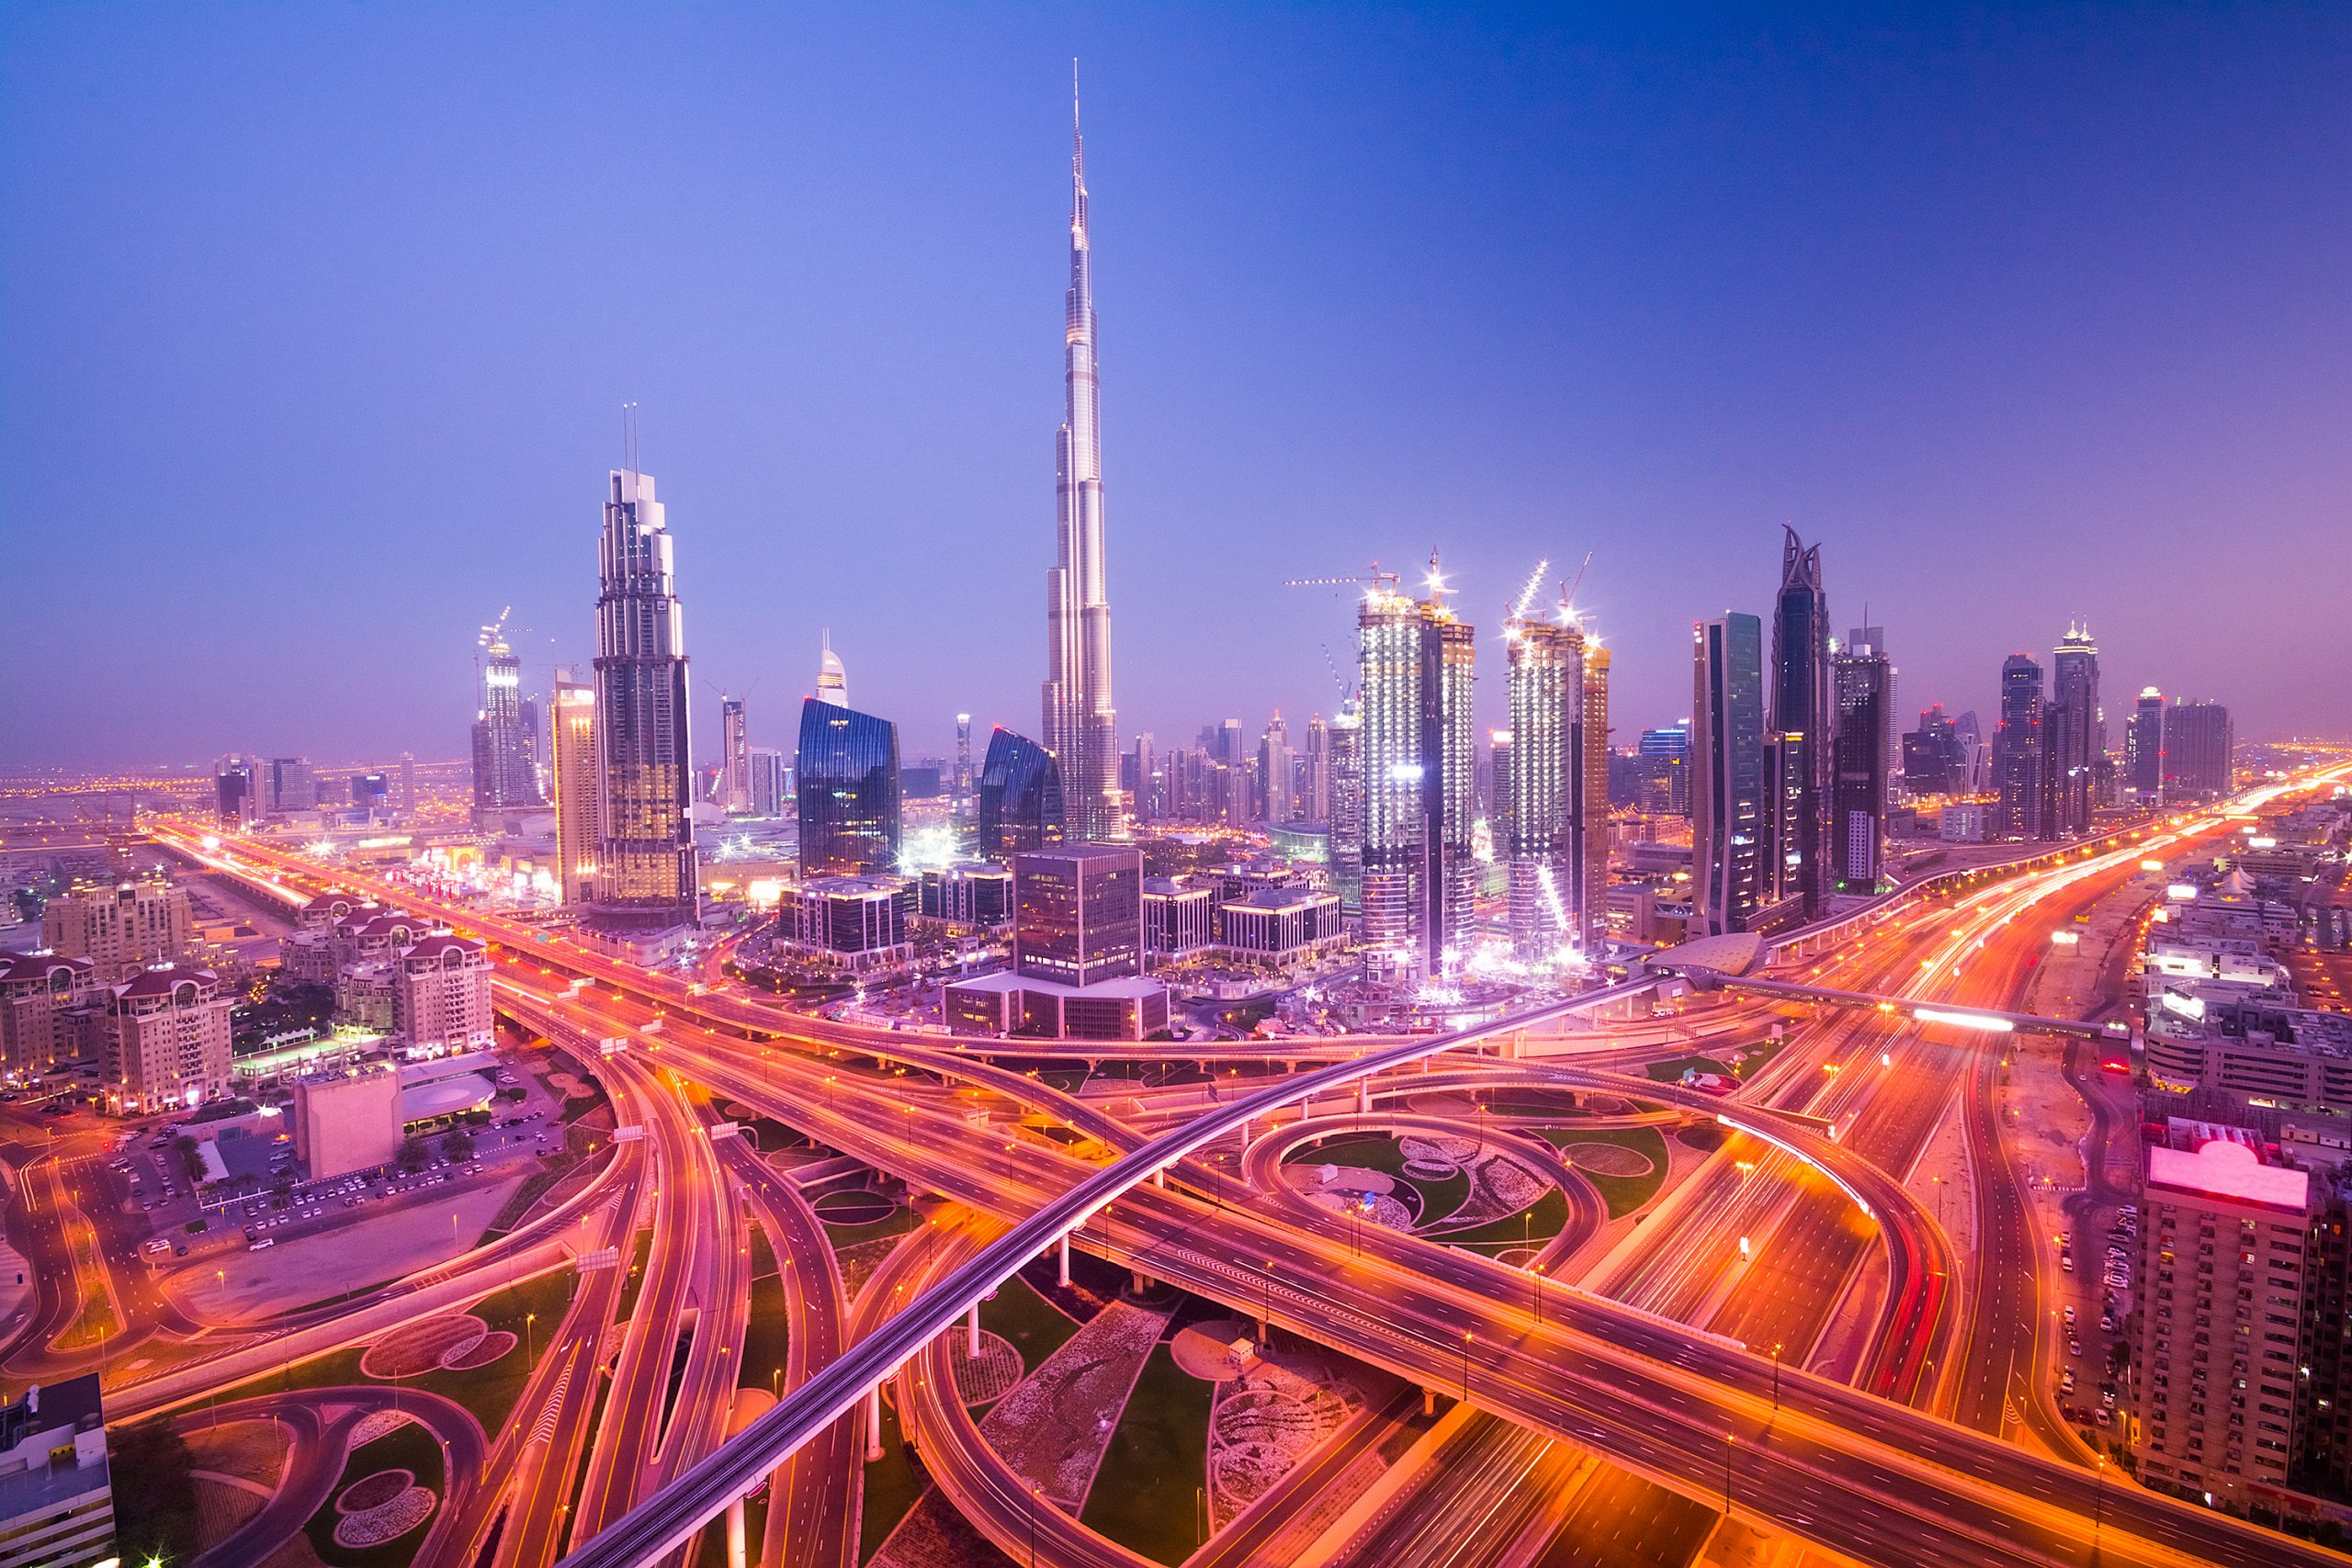 UAE allows 100% ownership of businesses by foreign nationals